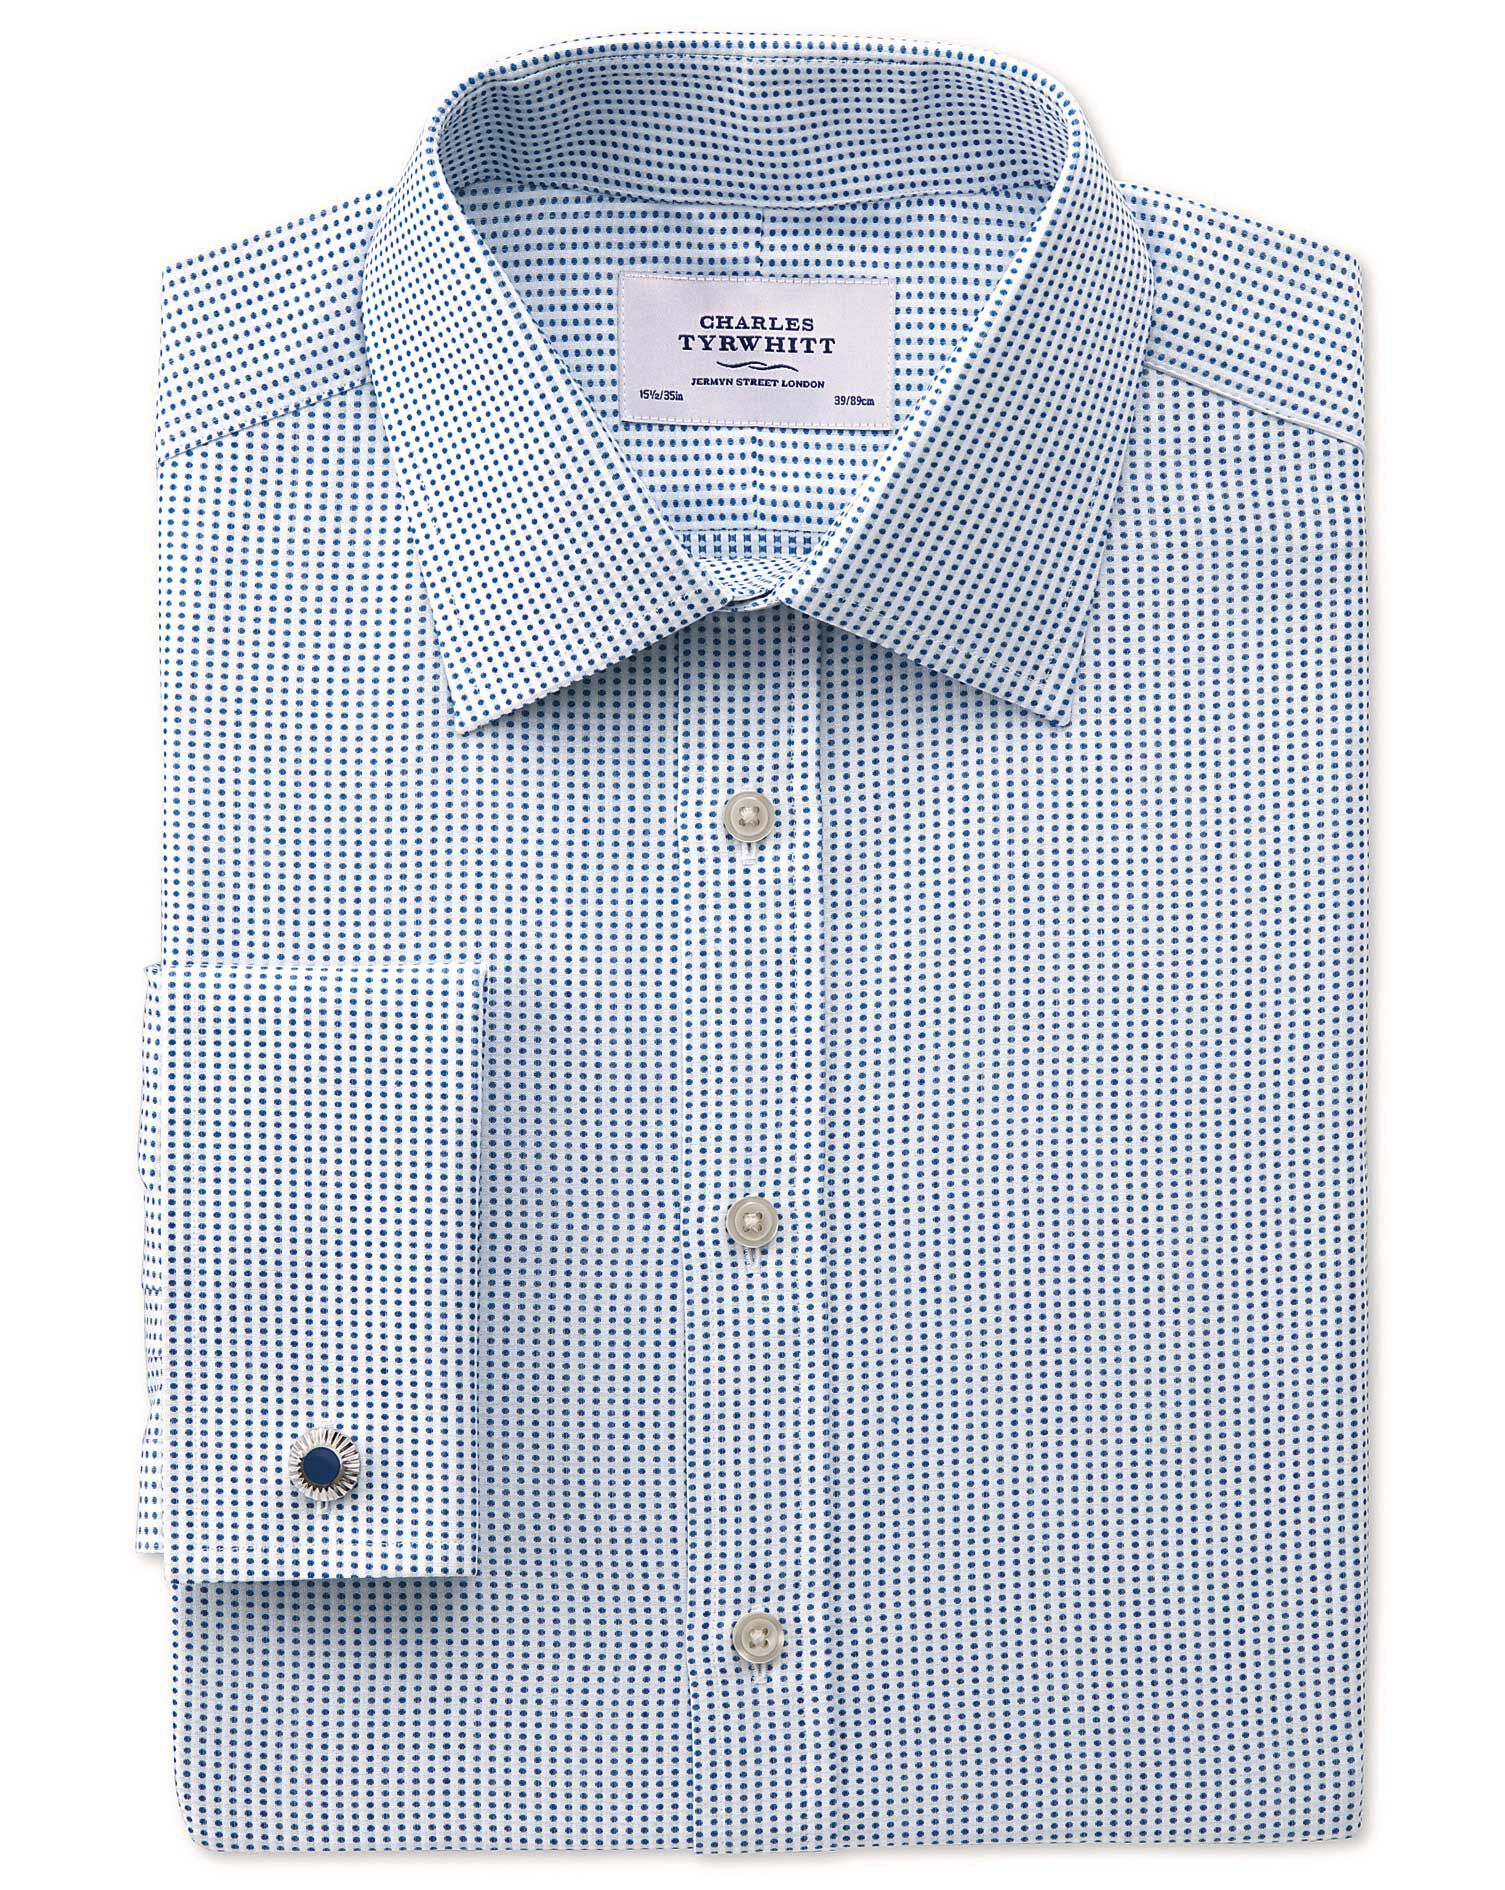 Slim Fit Pima Cotton Double-Faced Navy Formal Shirt Double Cuff Size 17/38 by Charles Tyrwhitt